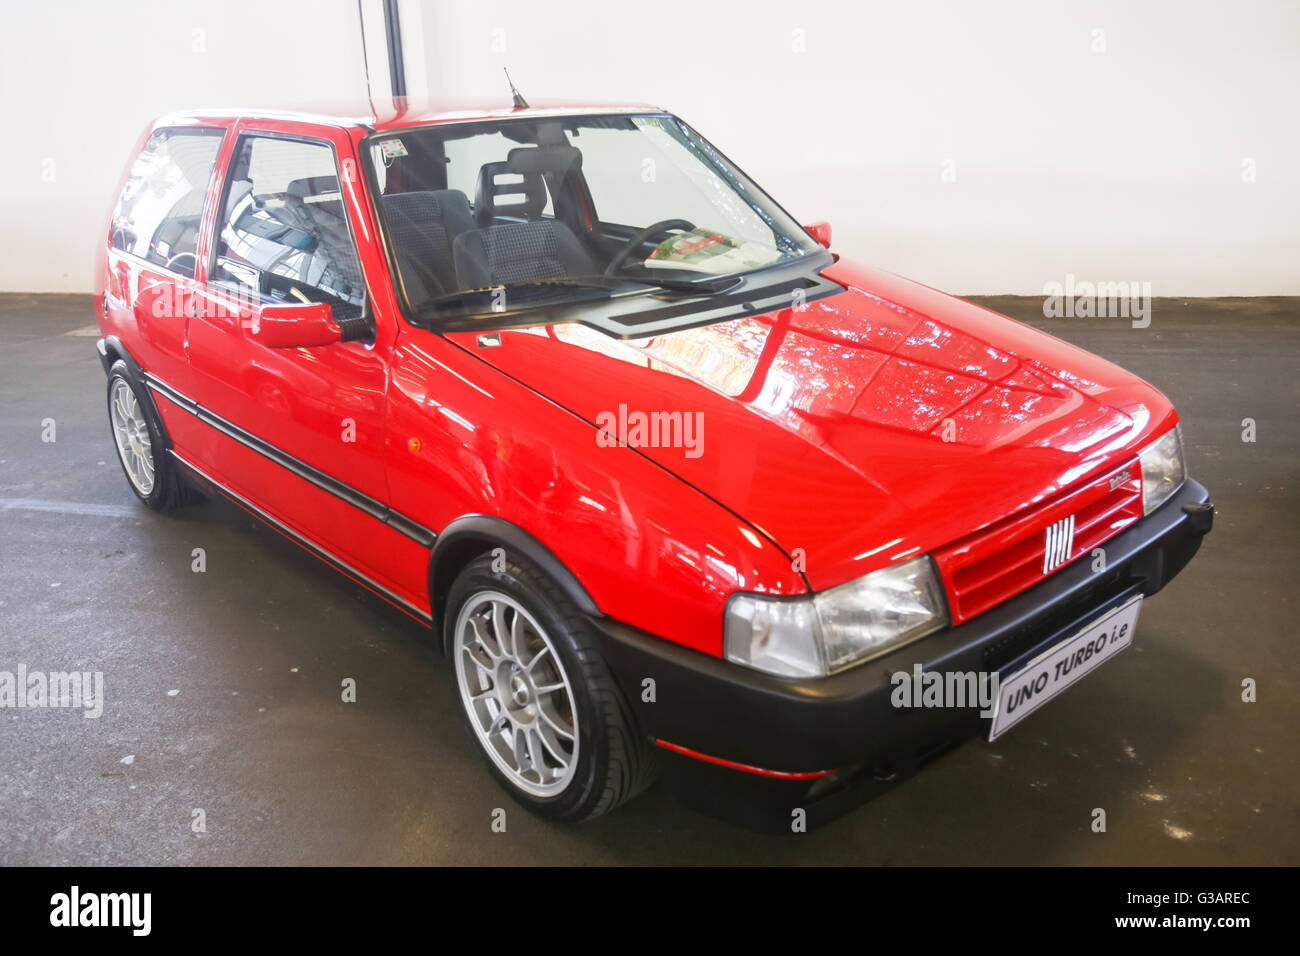 Zagreb Croatia June A Fiat Uno Turbo Ie Exhibited At Fast And G Arec on Red Fiat Uno Turbo